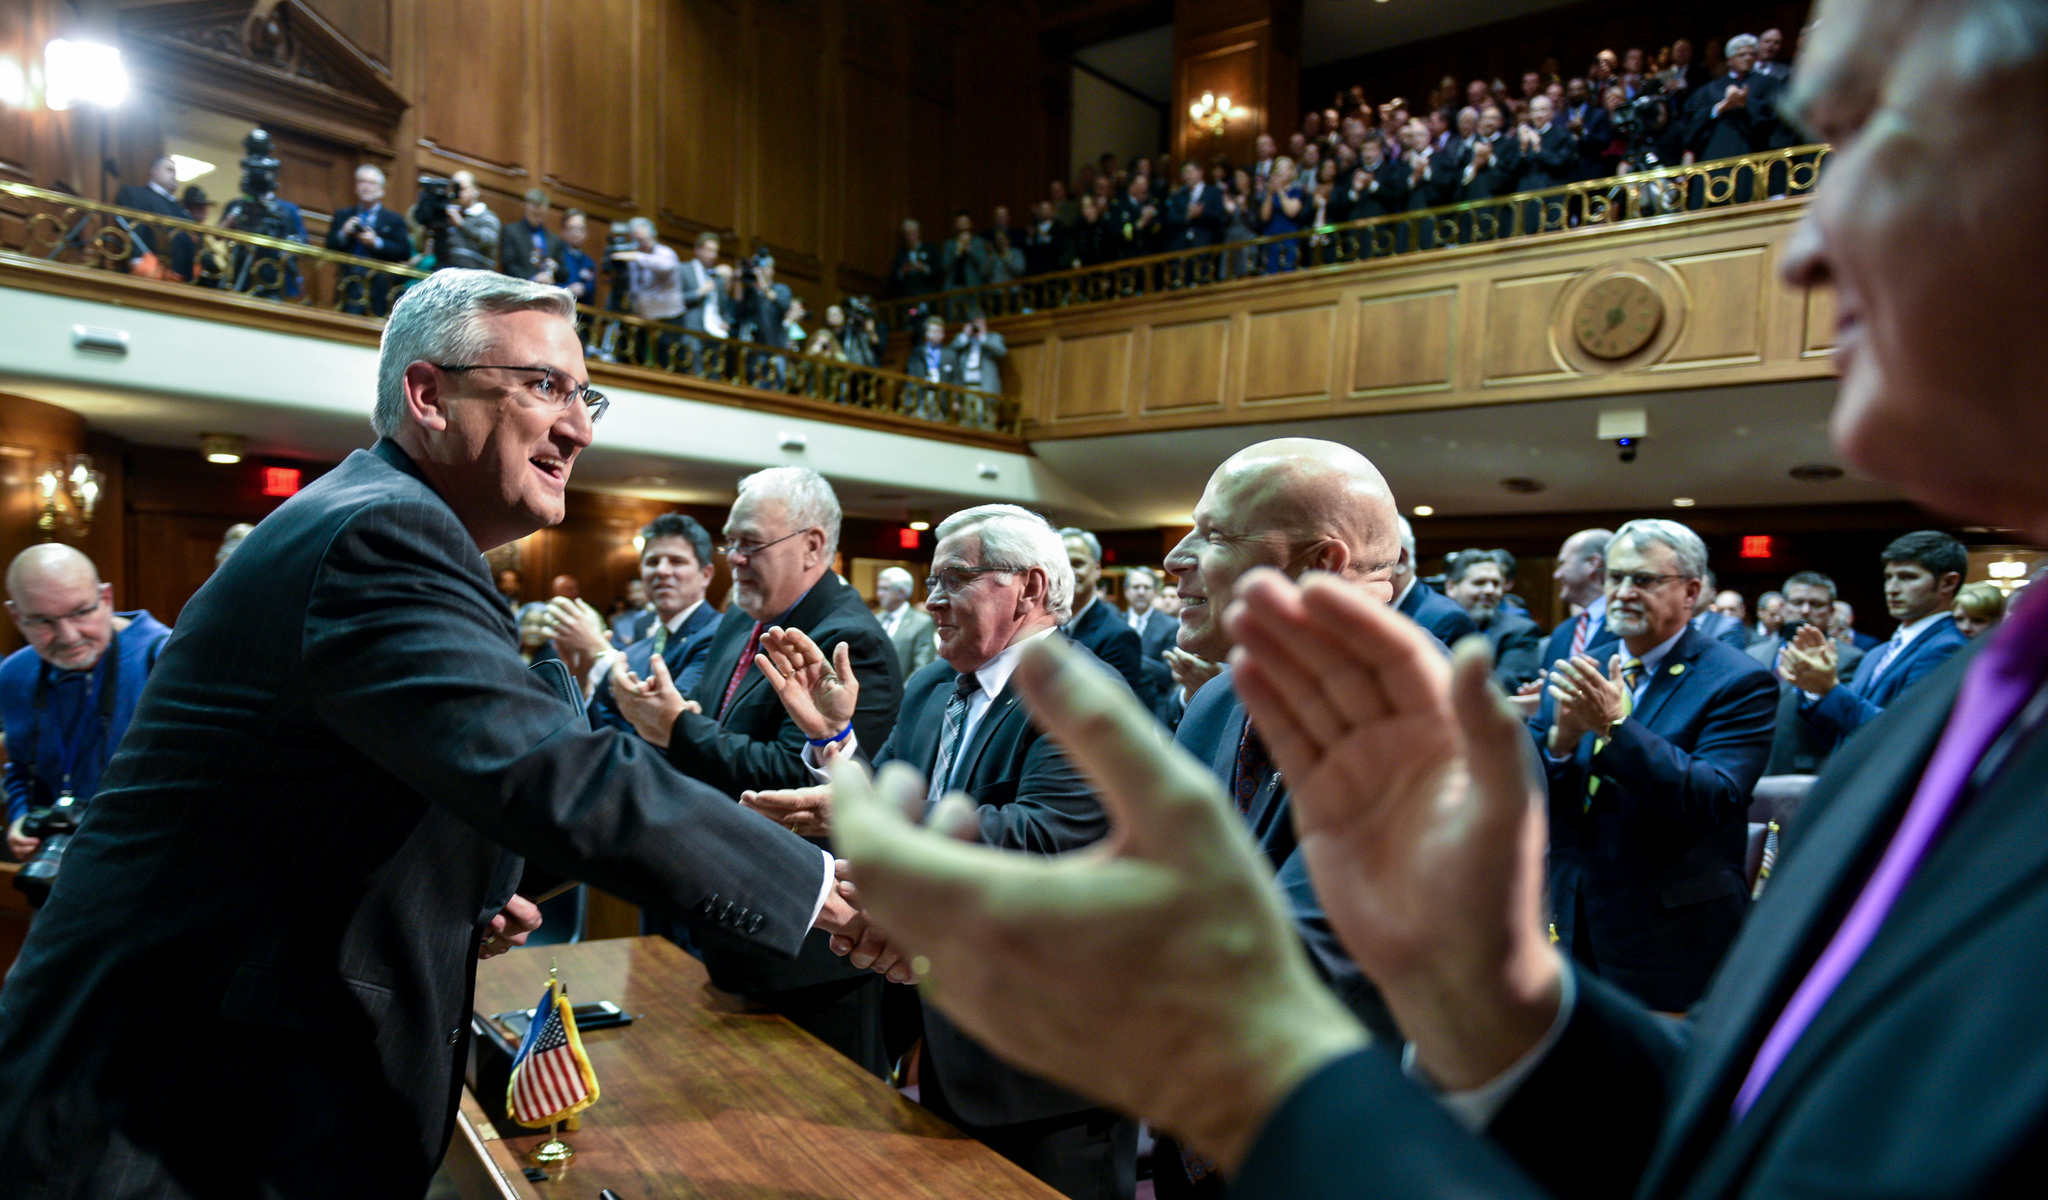 File Photo:. Gov. Eric Holcomb gives his 2018 State of the State address in Indianapolis on Tuesday, January 9, 2018.